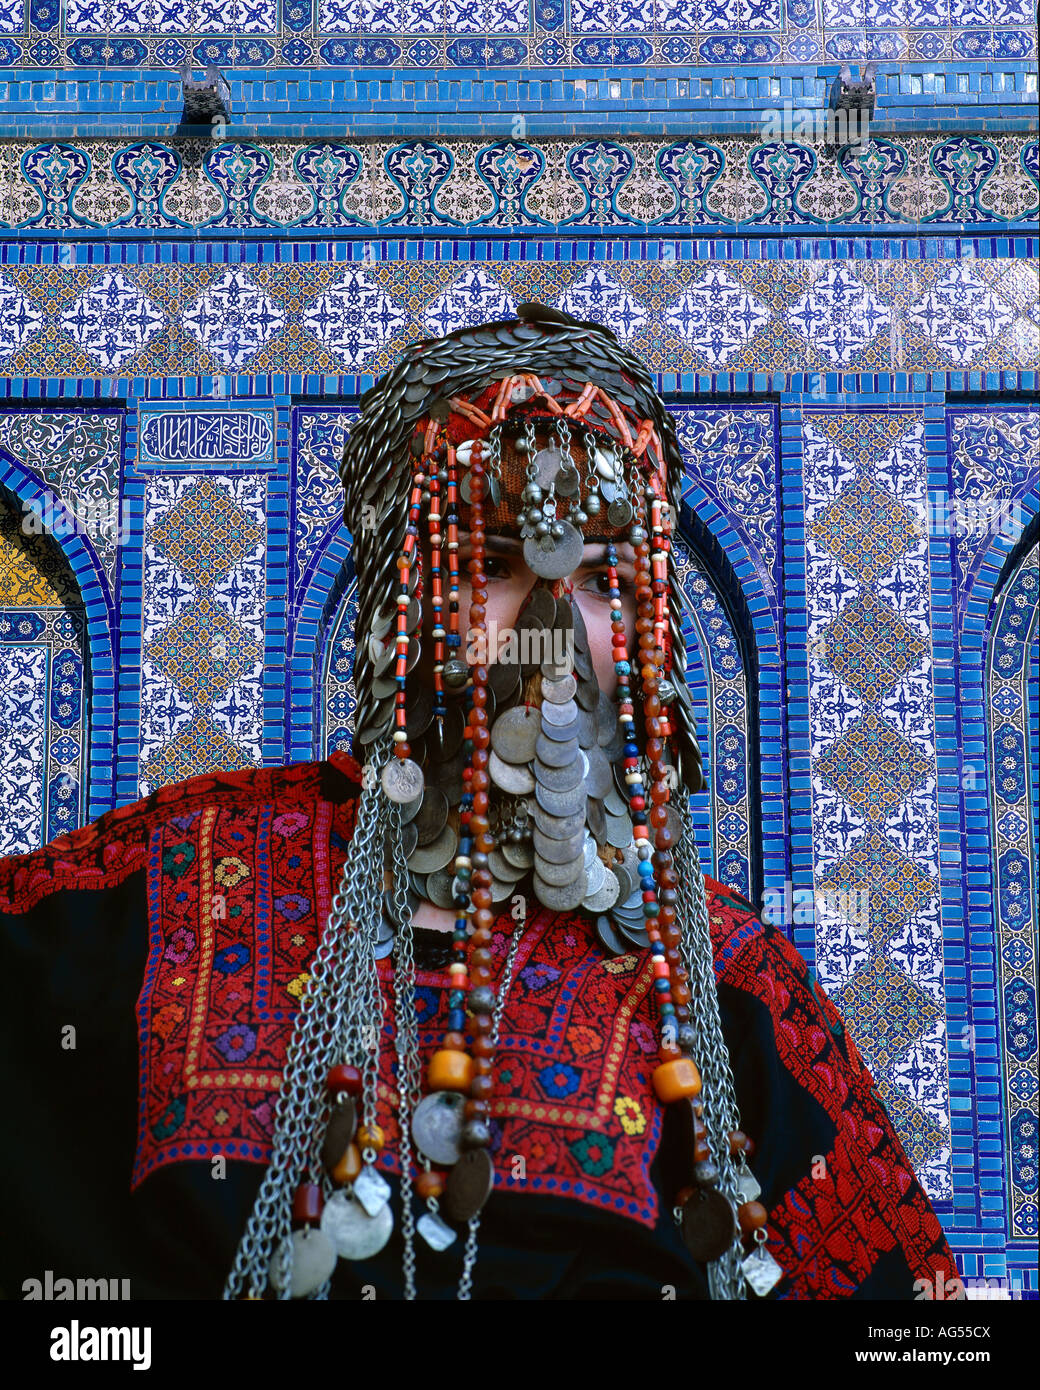 Beduoin bride, Jerusalem, Israel with a mosaic background from the Dome of the Rock - Stock Image